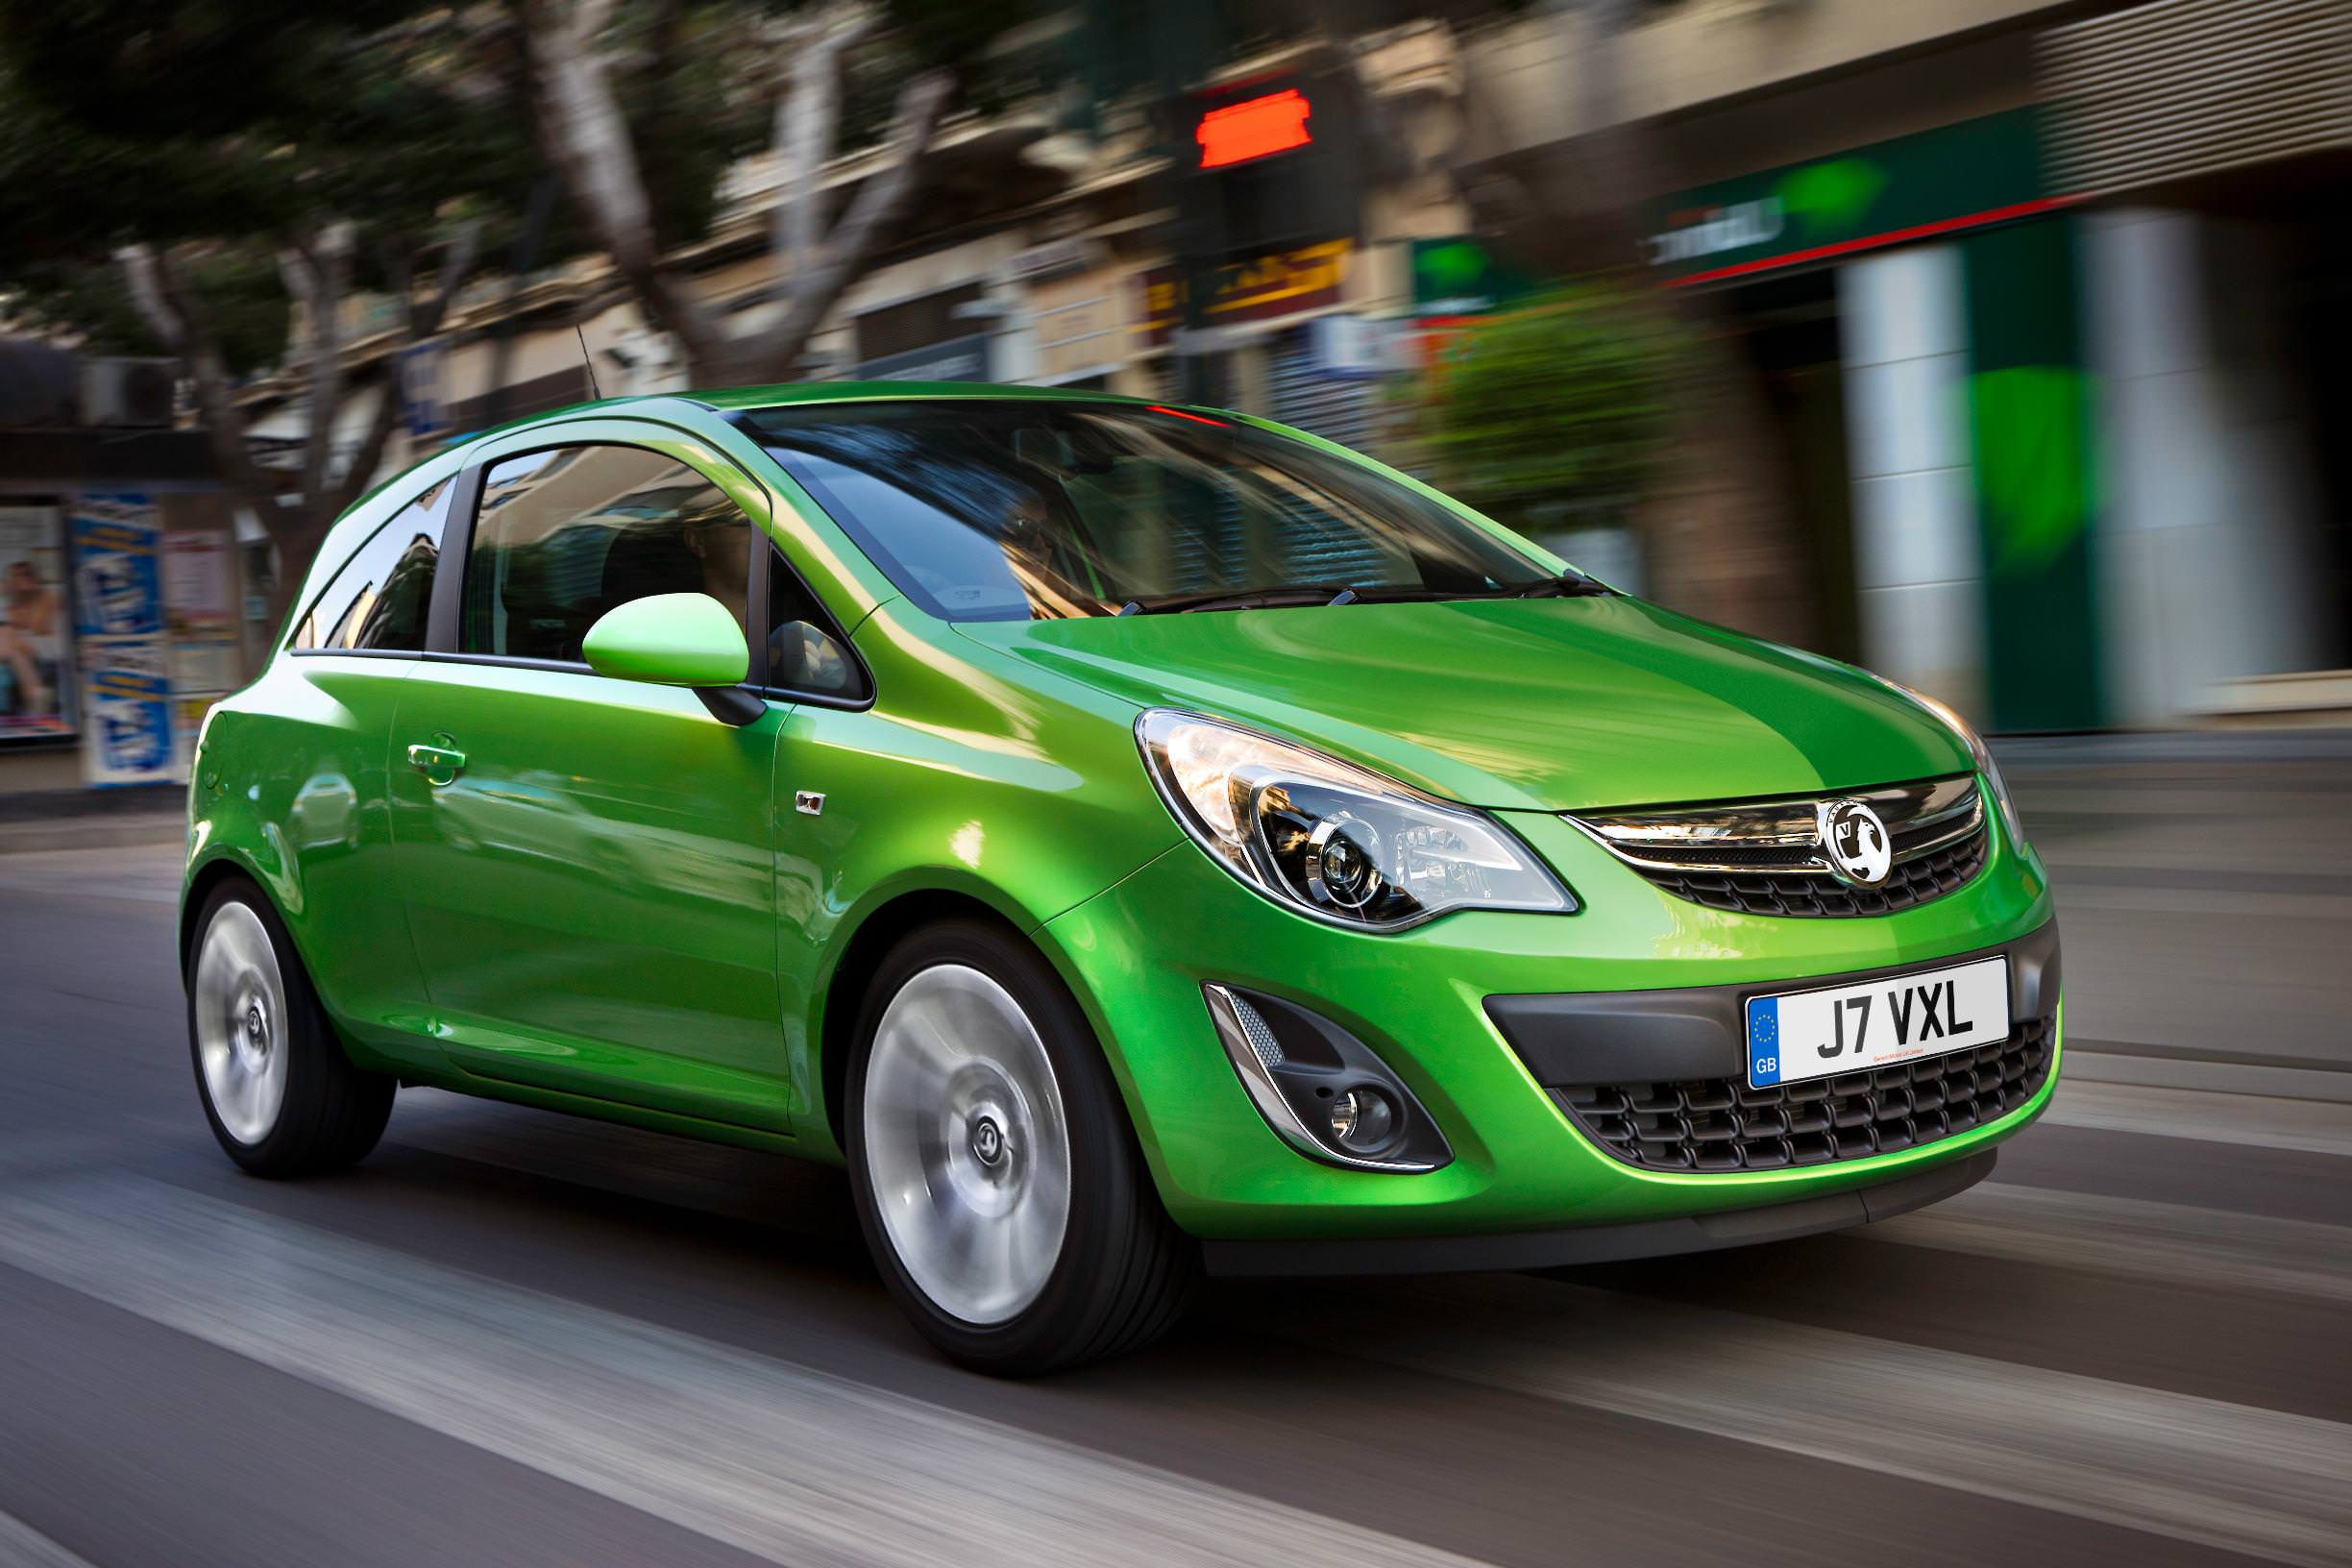 Used Candy Apple Green Vauxhall Corsa driving down high-street